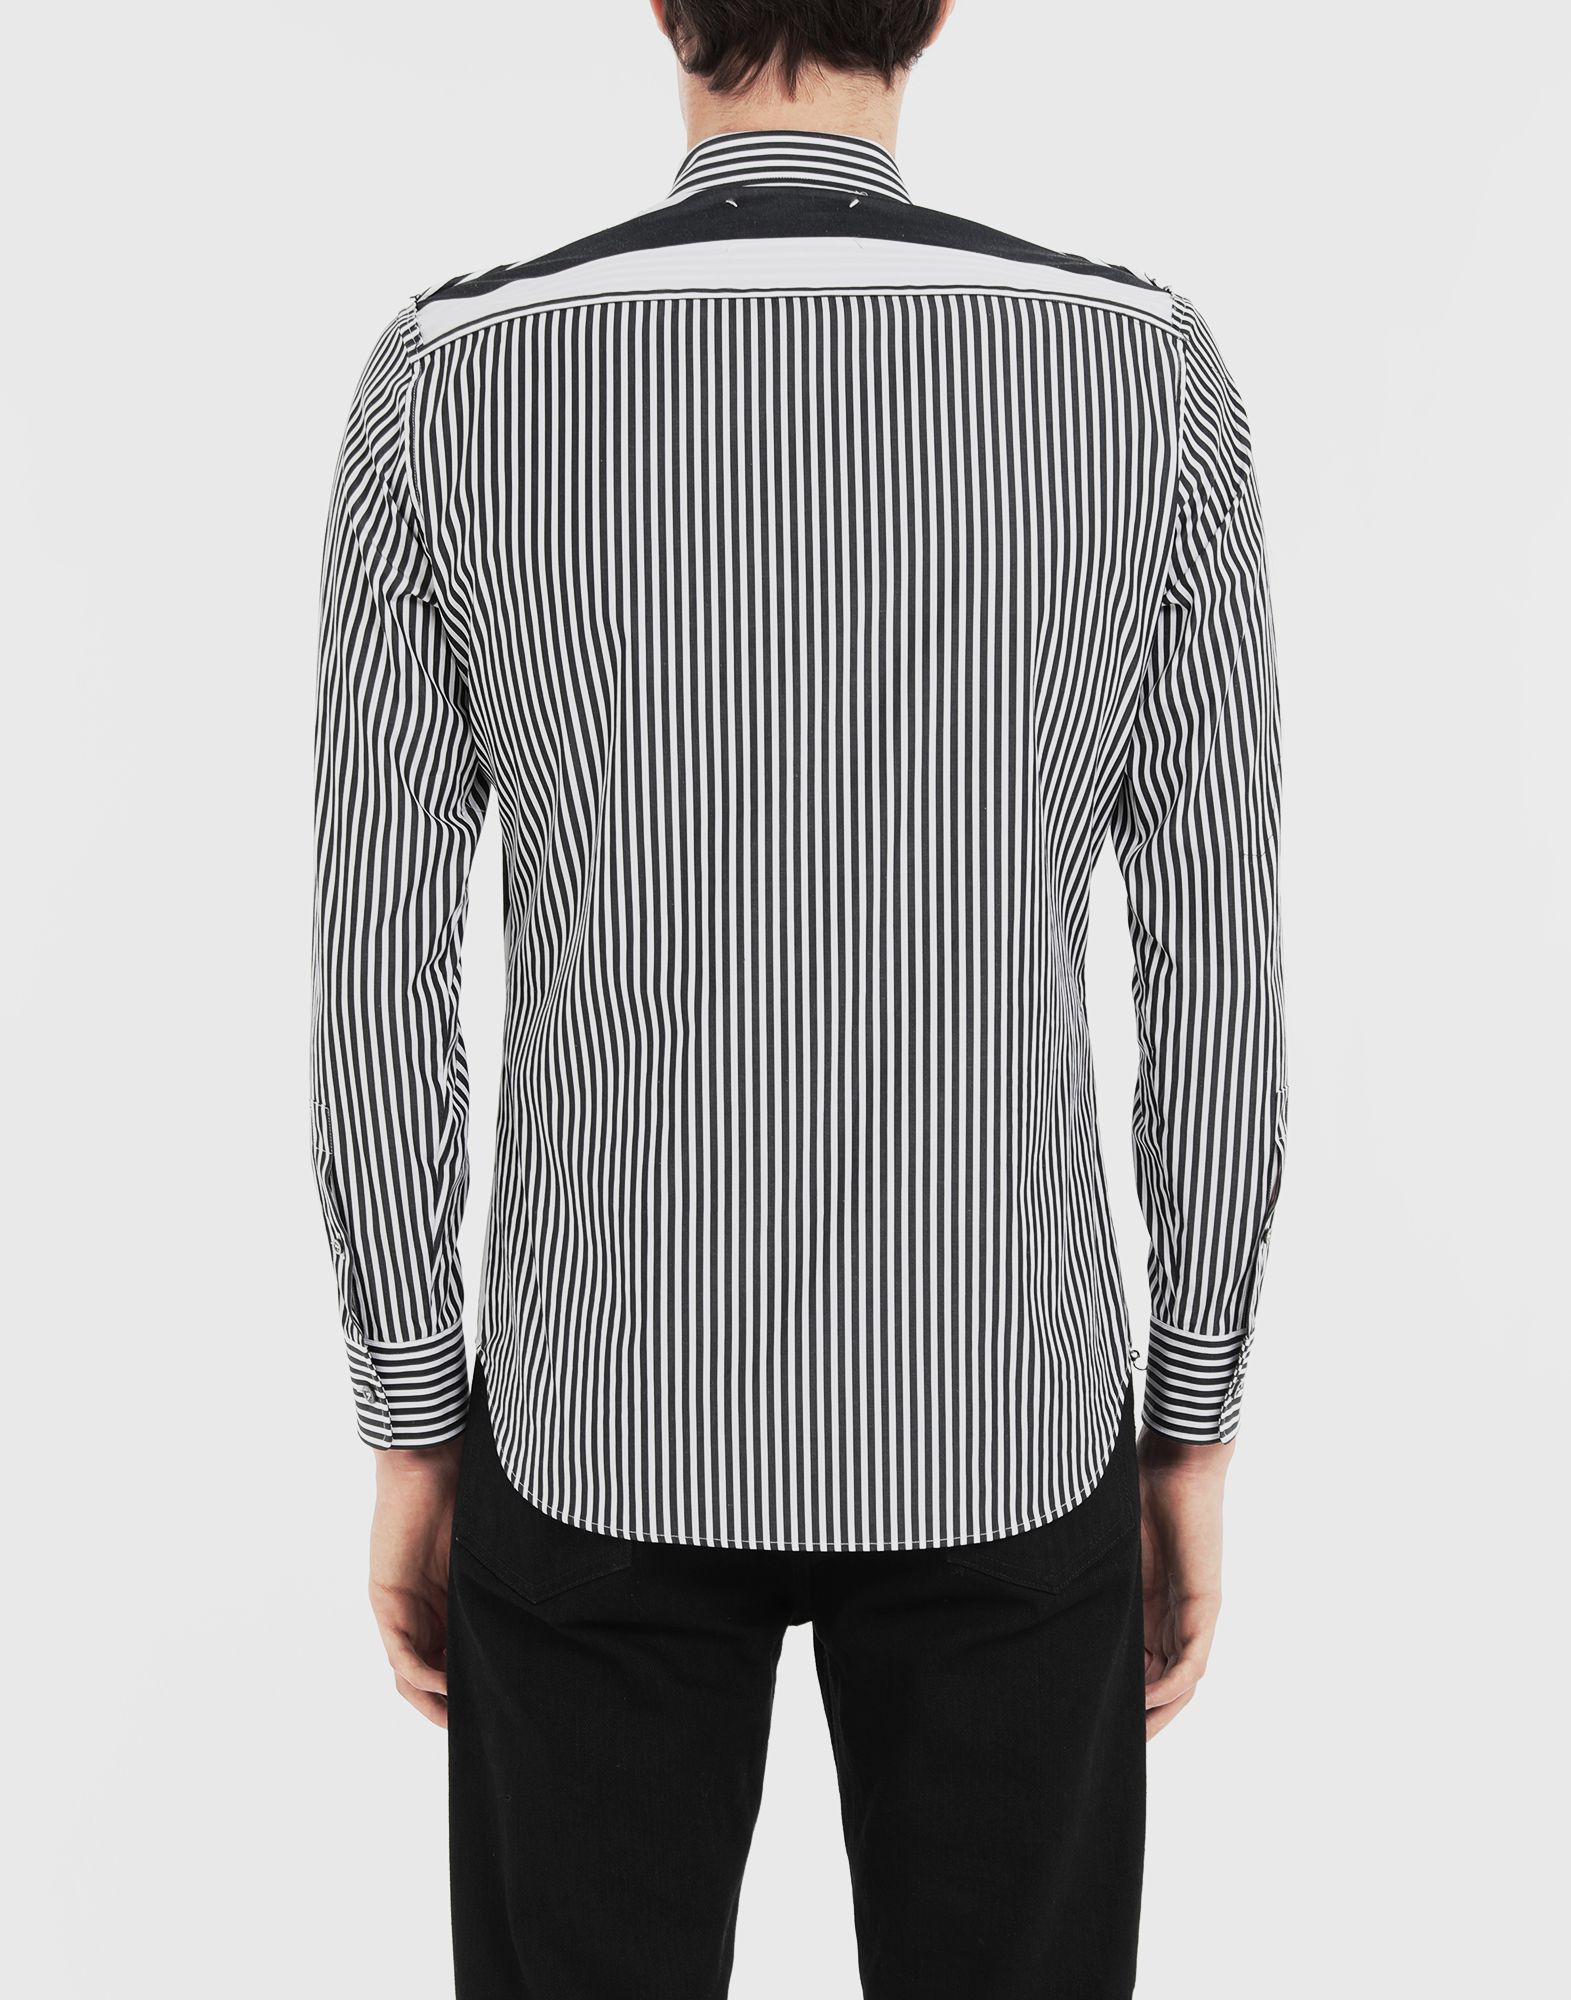 MAISON MARGIELA Décortiqué striped shirt Long sleeve shirt Man e